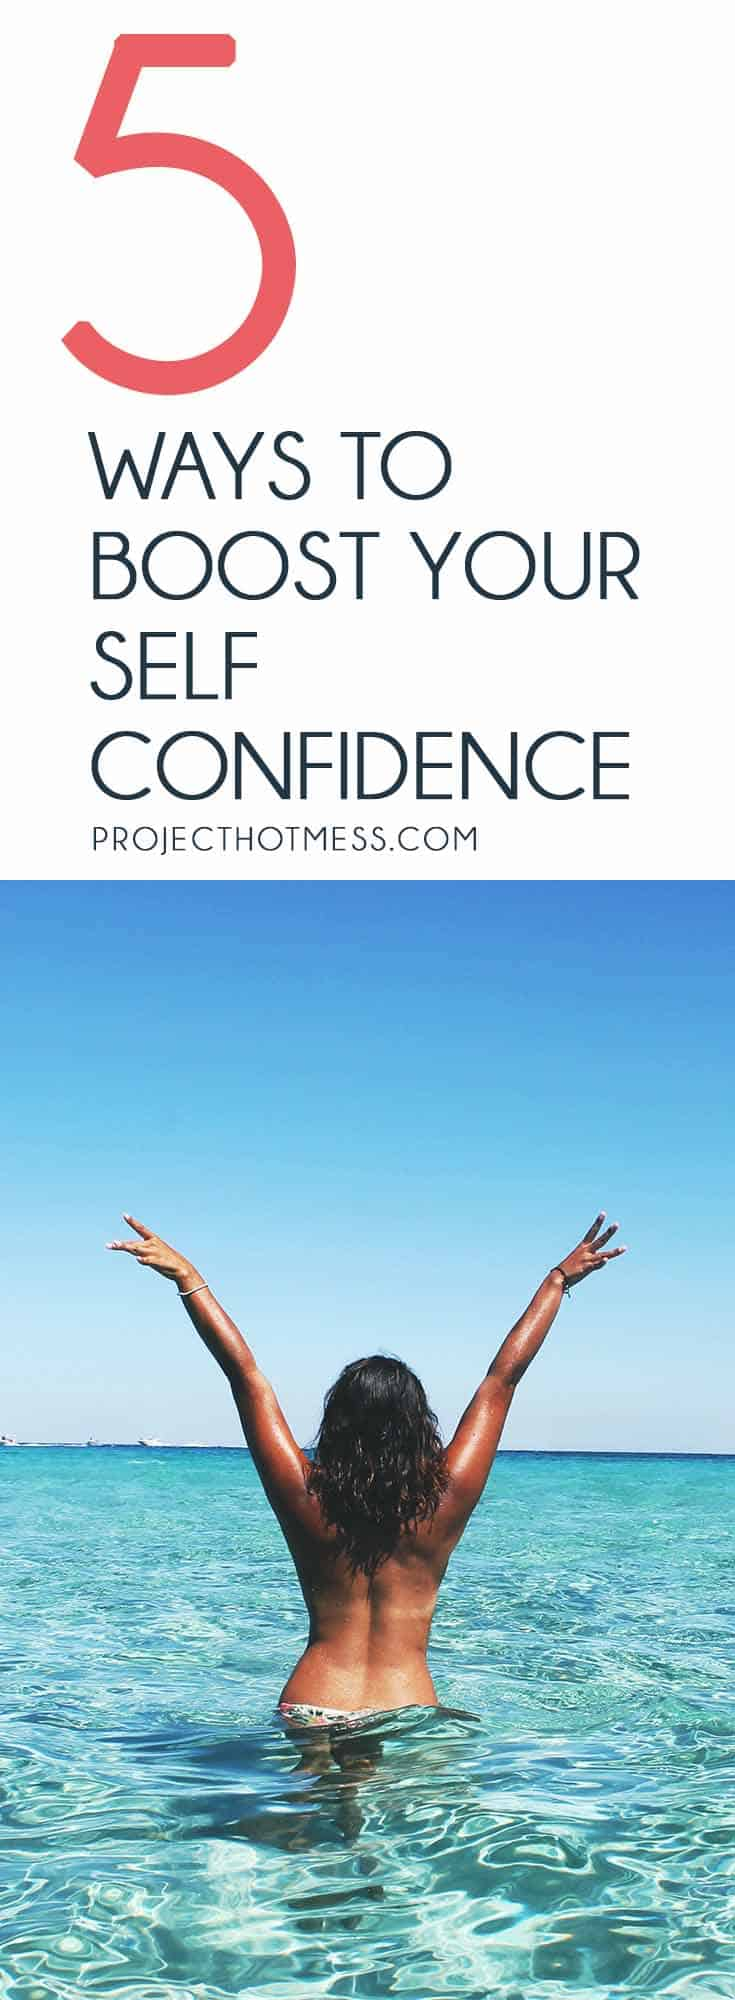 Sometimes all it takes is a few little things to help boost your self confidence and make you feel amazing. Try these 5 things next time you need some help in the self confidence department. You'd be amazed at how effective they are.